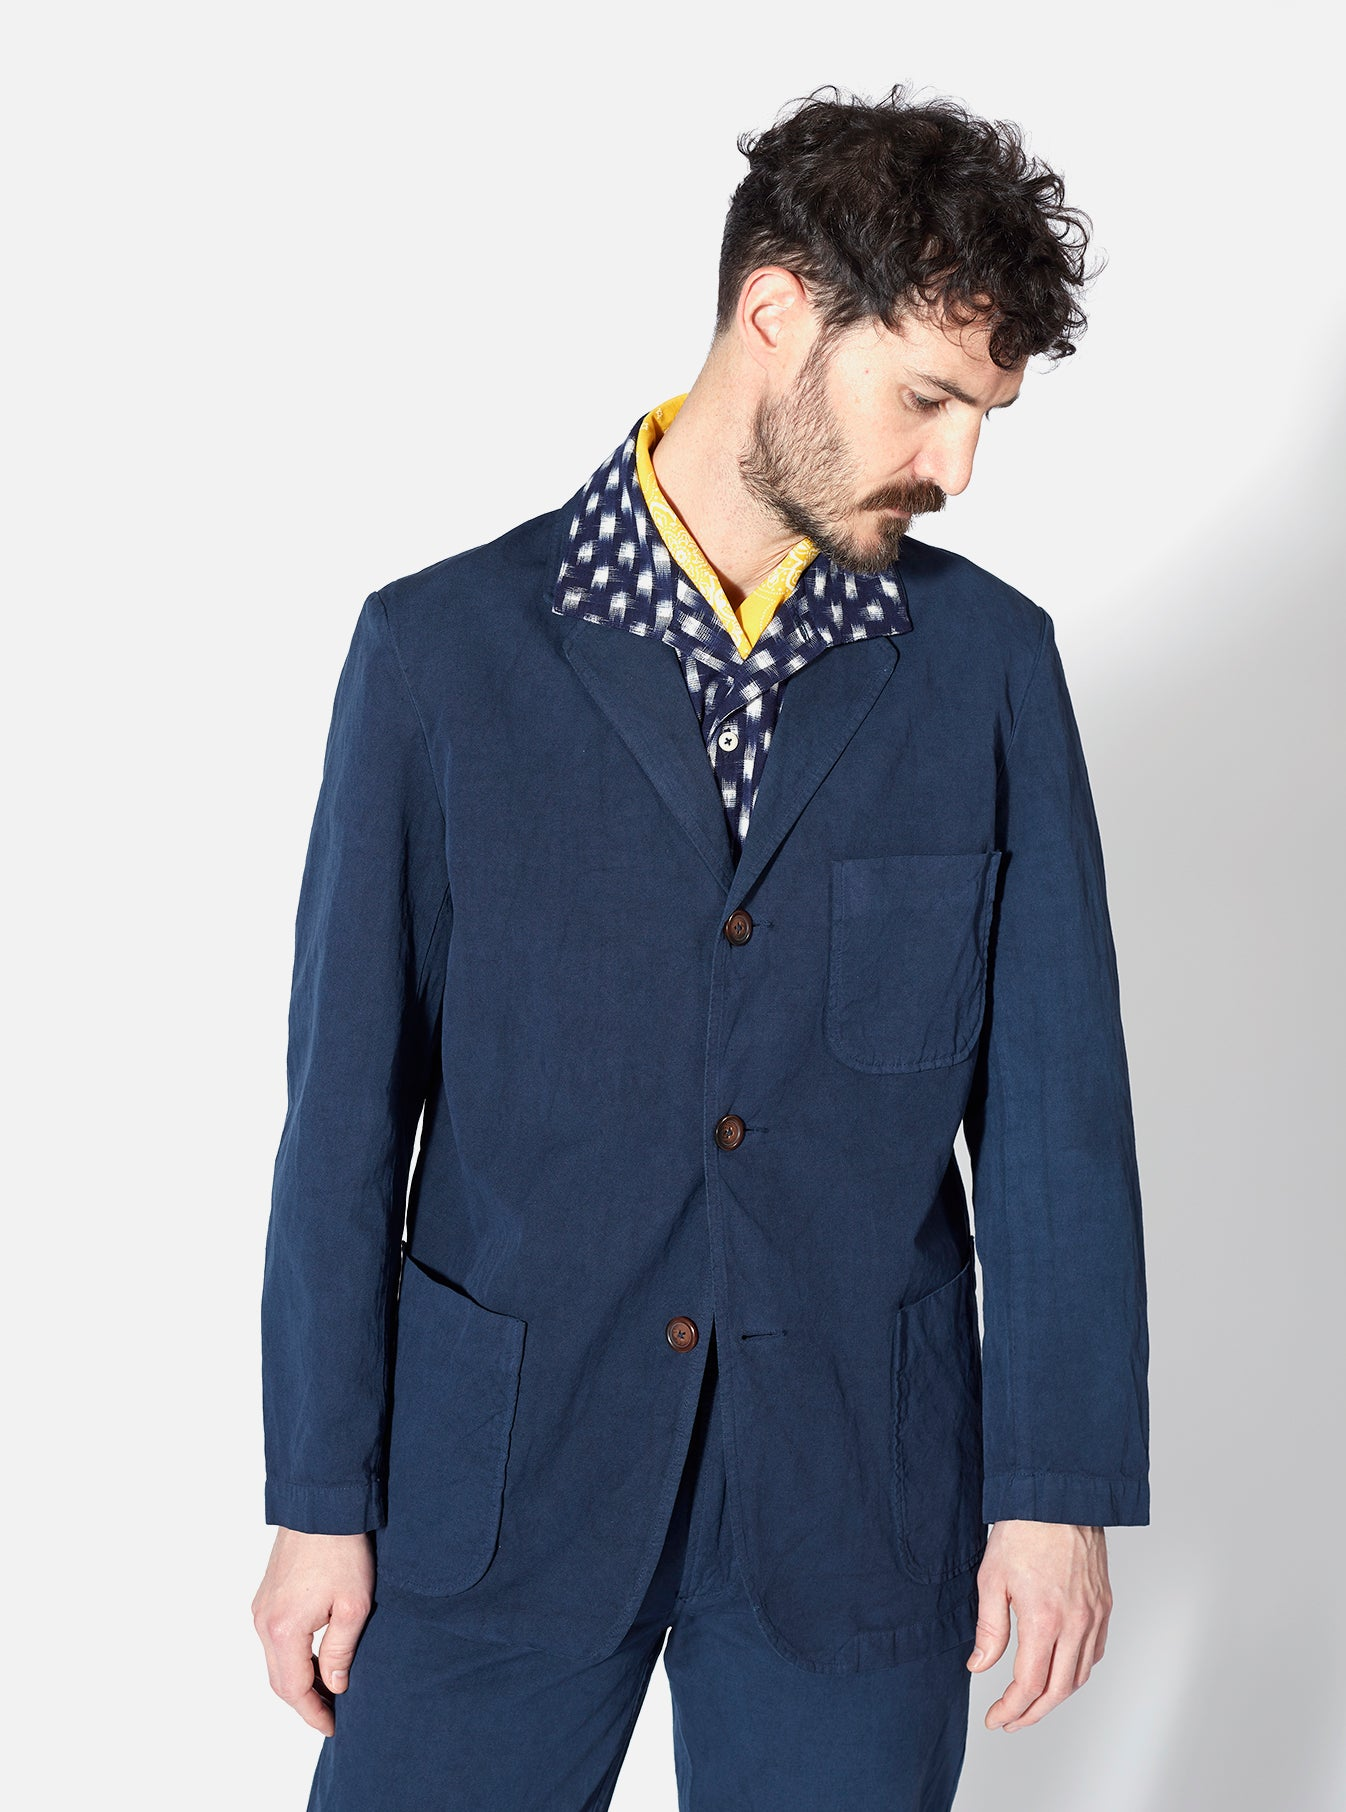 Universal Works Three Button Jacket in Navy Linen Cotton